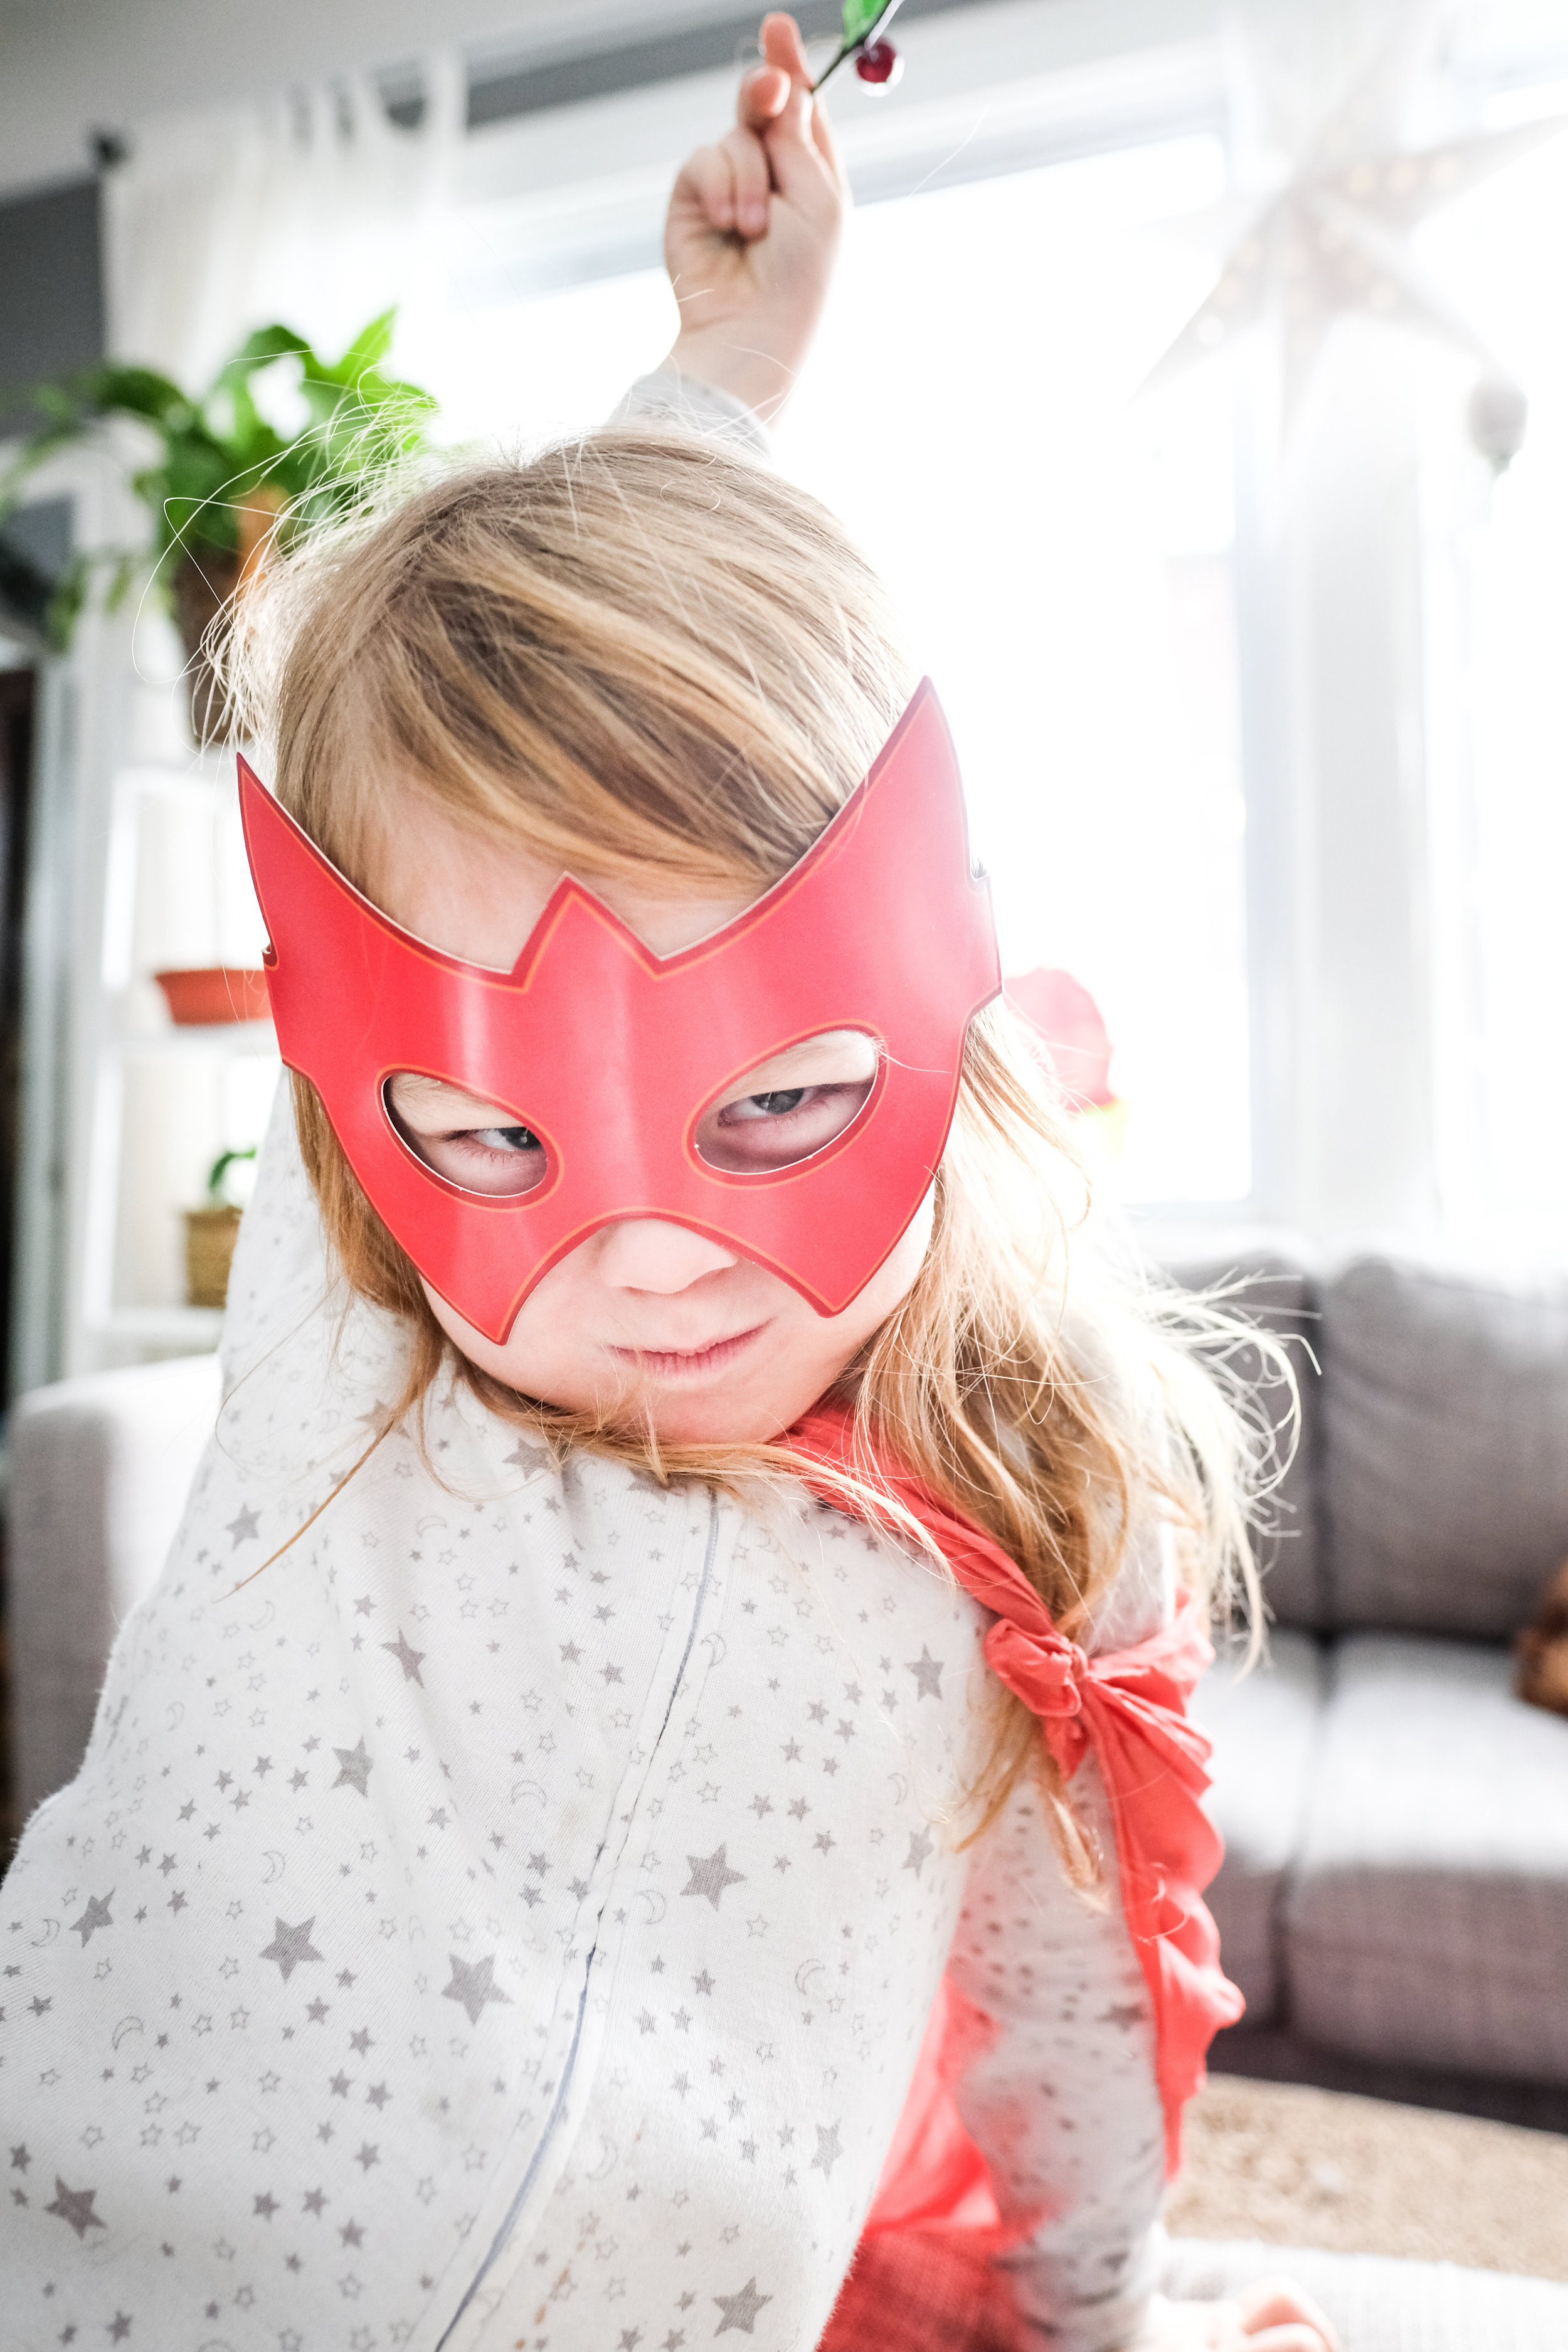 Boy with superhero mask.